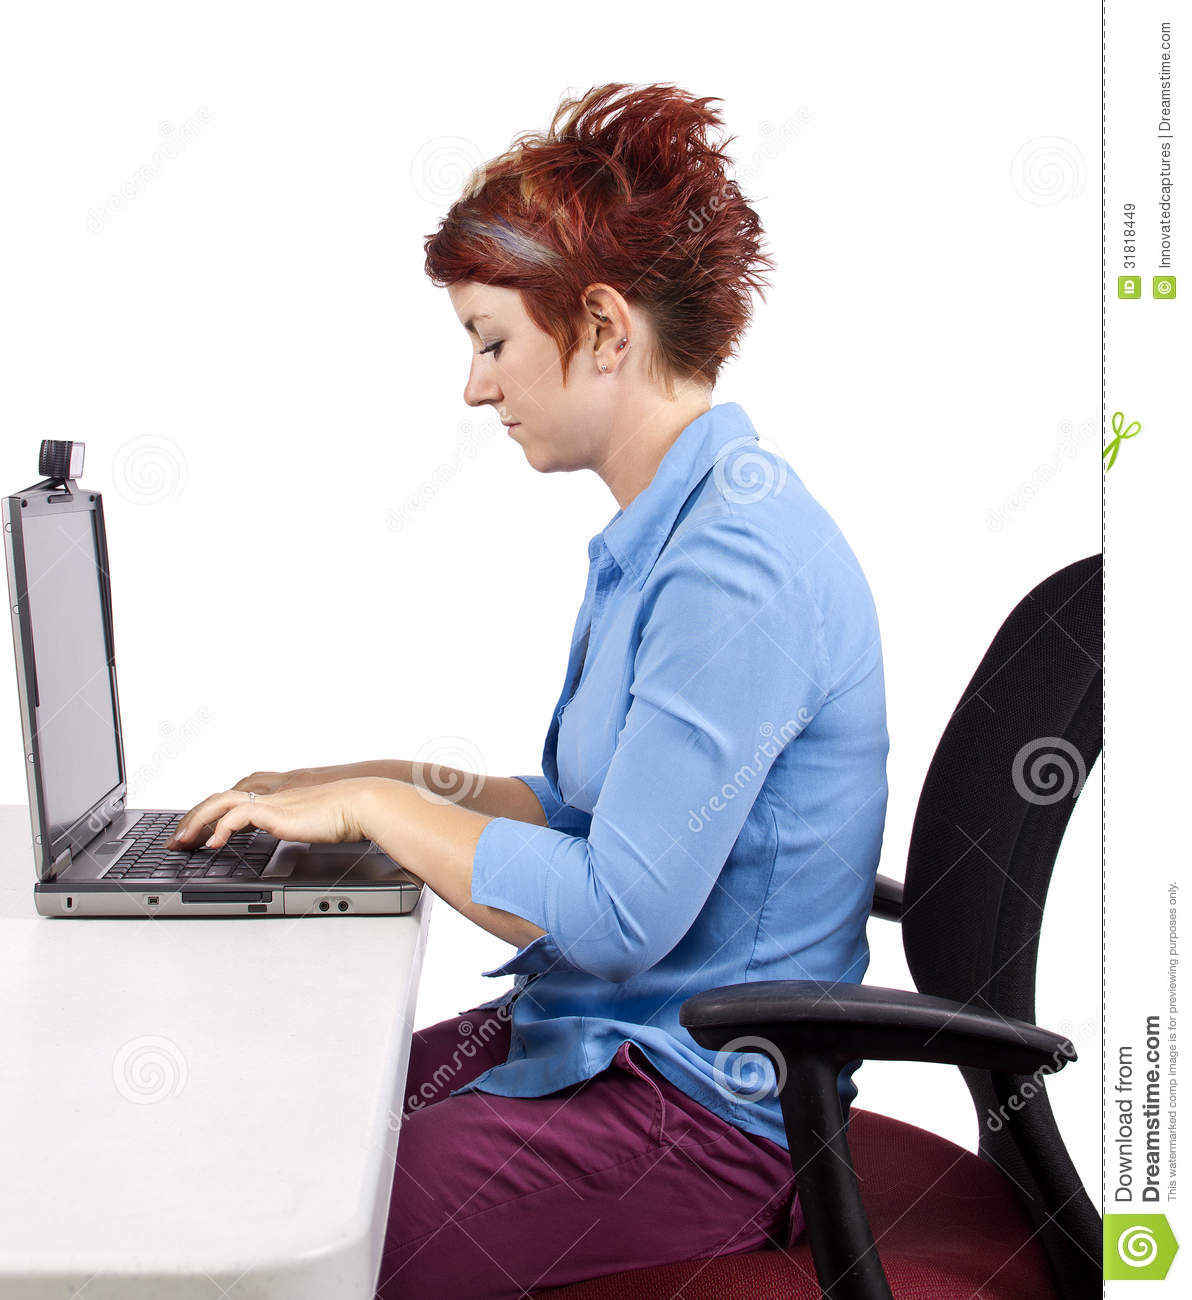 proper chair posture at computer outdoor folding with canopy improper royalty free stock images - image: 31818449